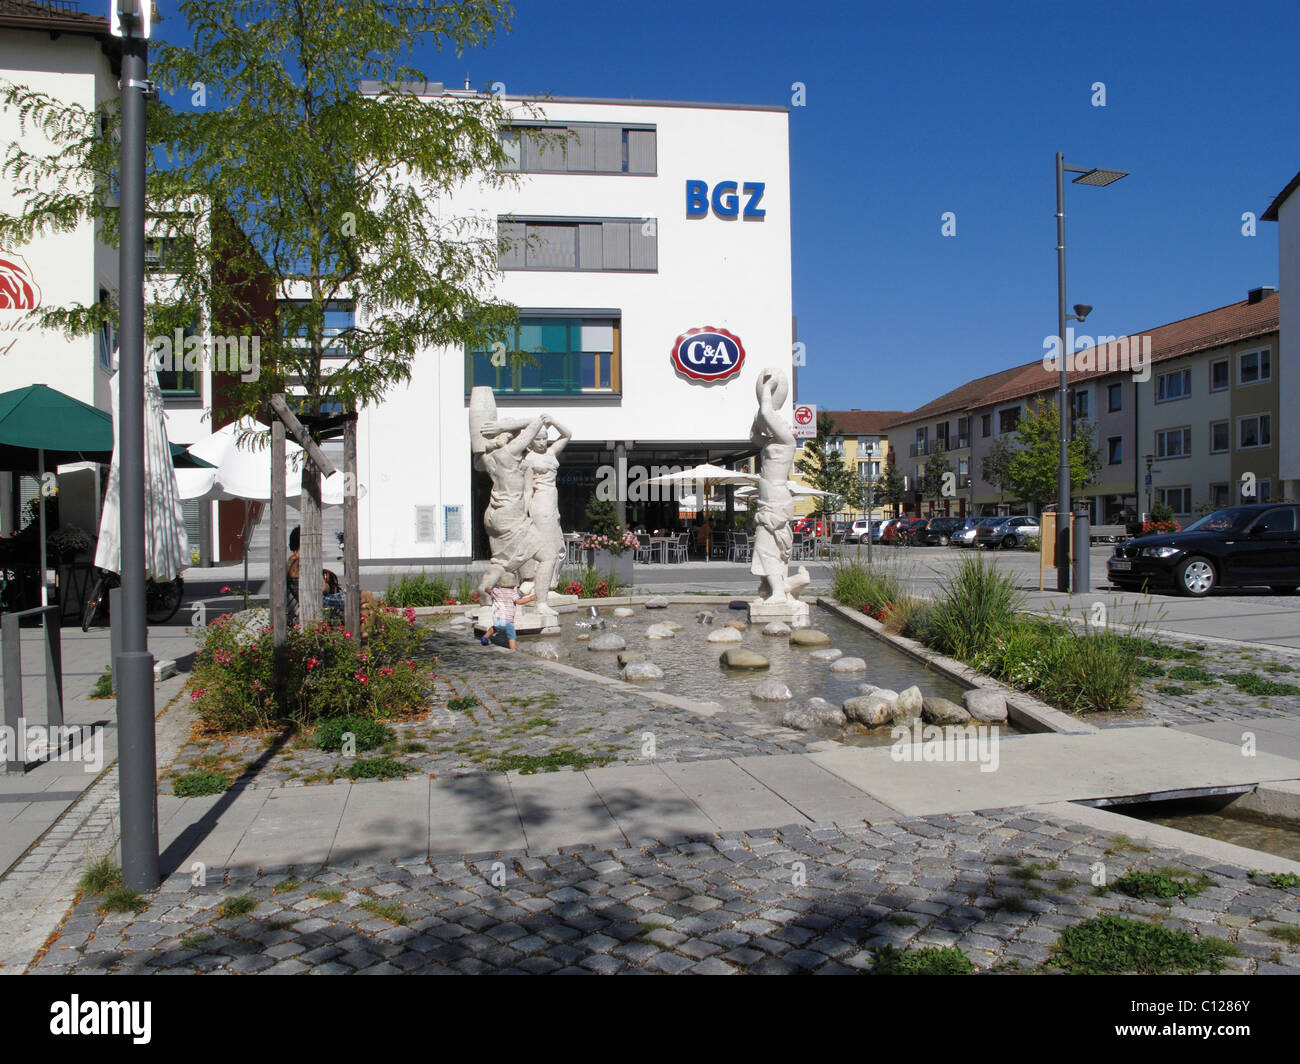 BGZ business premises, fountain, city center, Karl-Lederer-Platz, Geretsried, Upper Bavaria, Bavaria, Germany, Europe Stock Photo